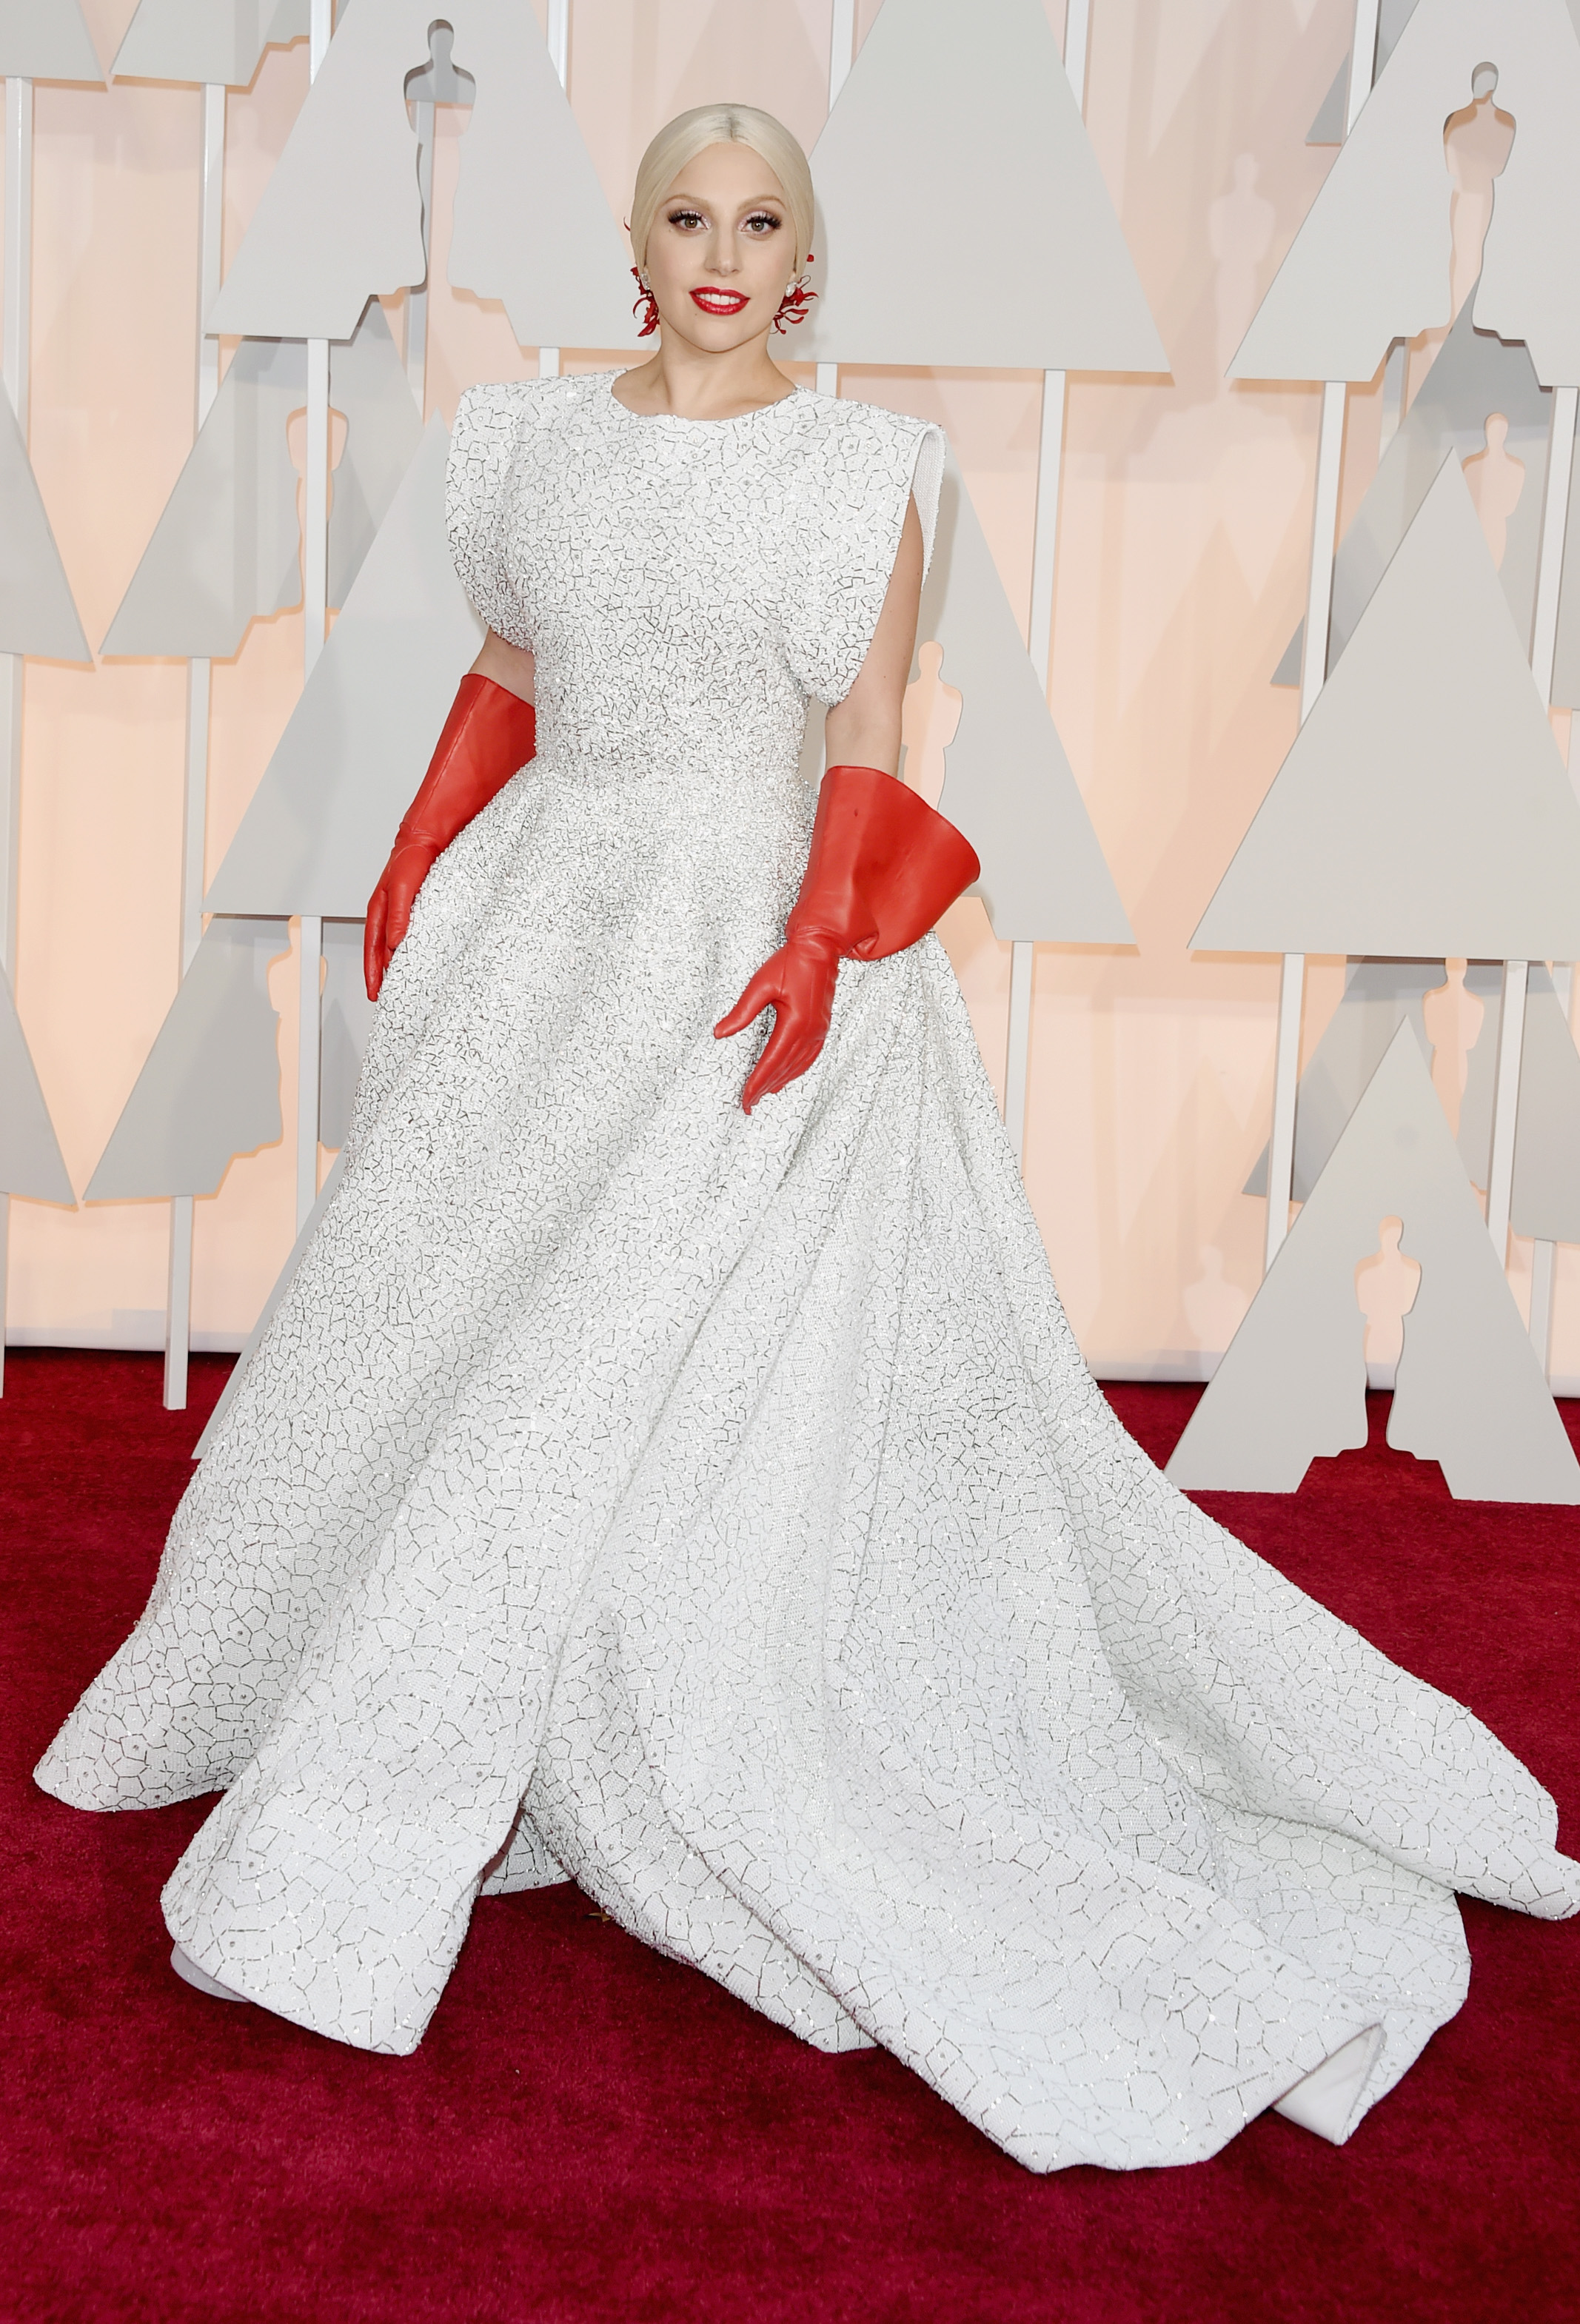 HOLLYWOOD, CA - FEBRUARY 22:  Recording artist Lady Gaga attends the 87th Annual Academy Awards at Hollywood & Highland Center on February 22, 2015 in Hollywood, California.  (Photo by Jason Merritt/Getty Images)